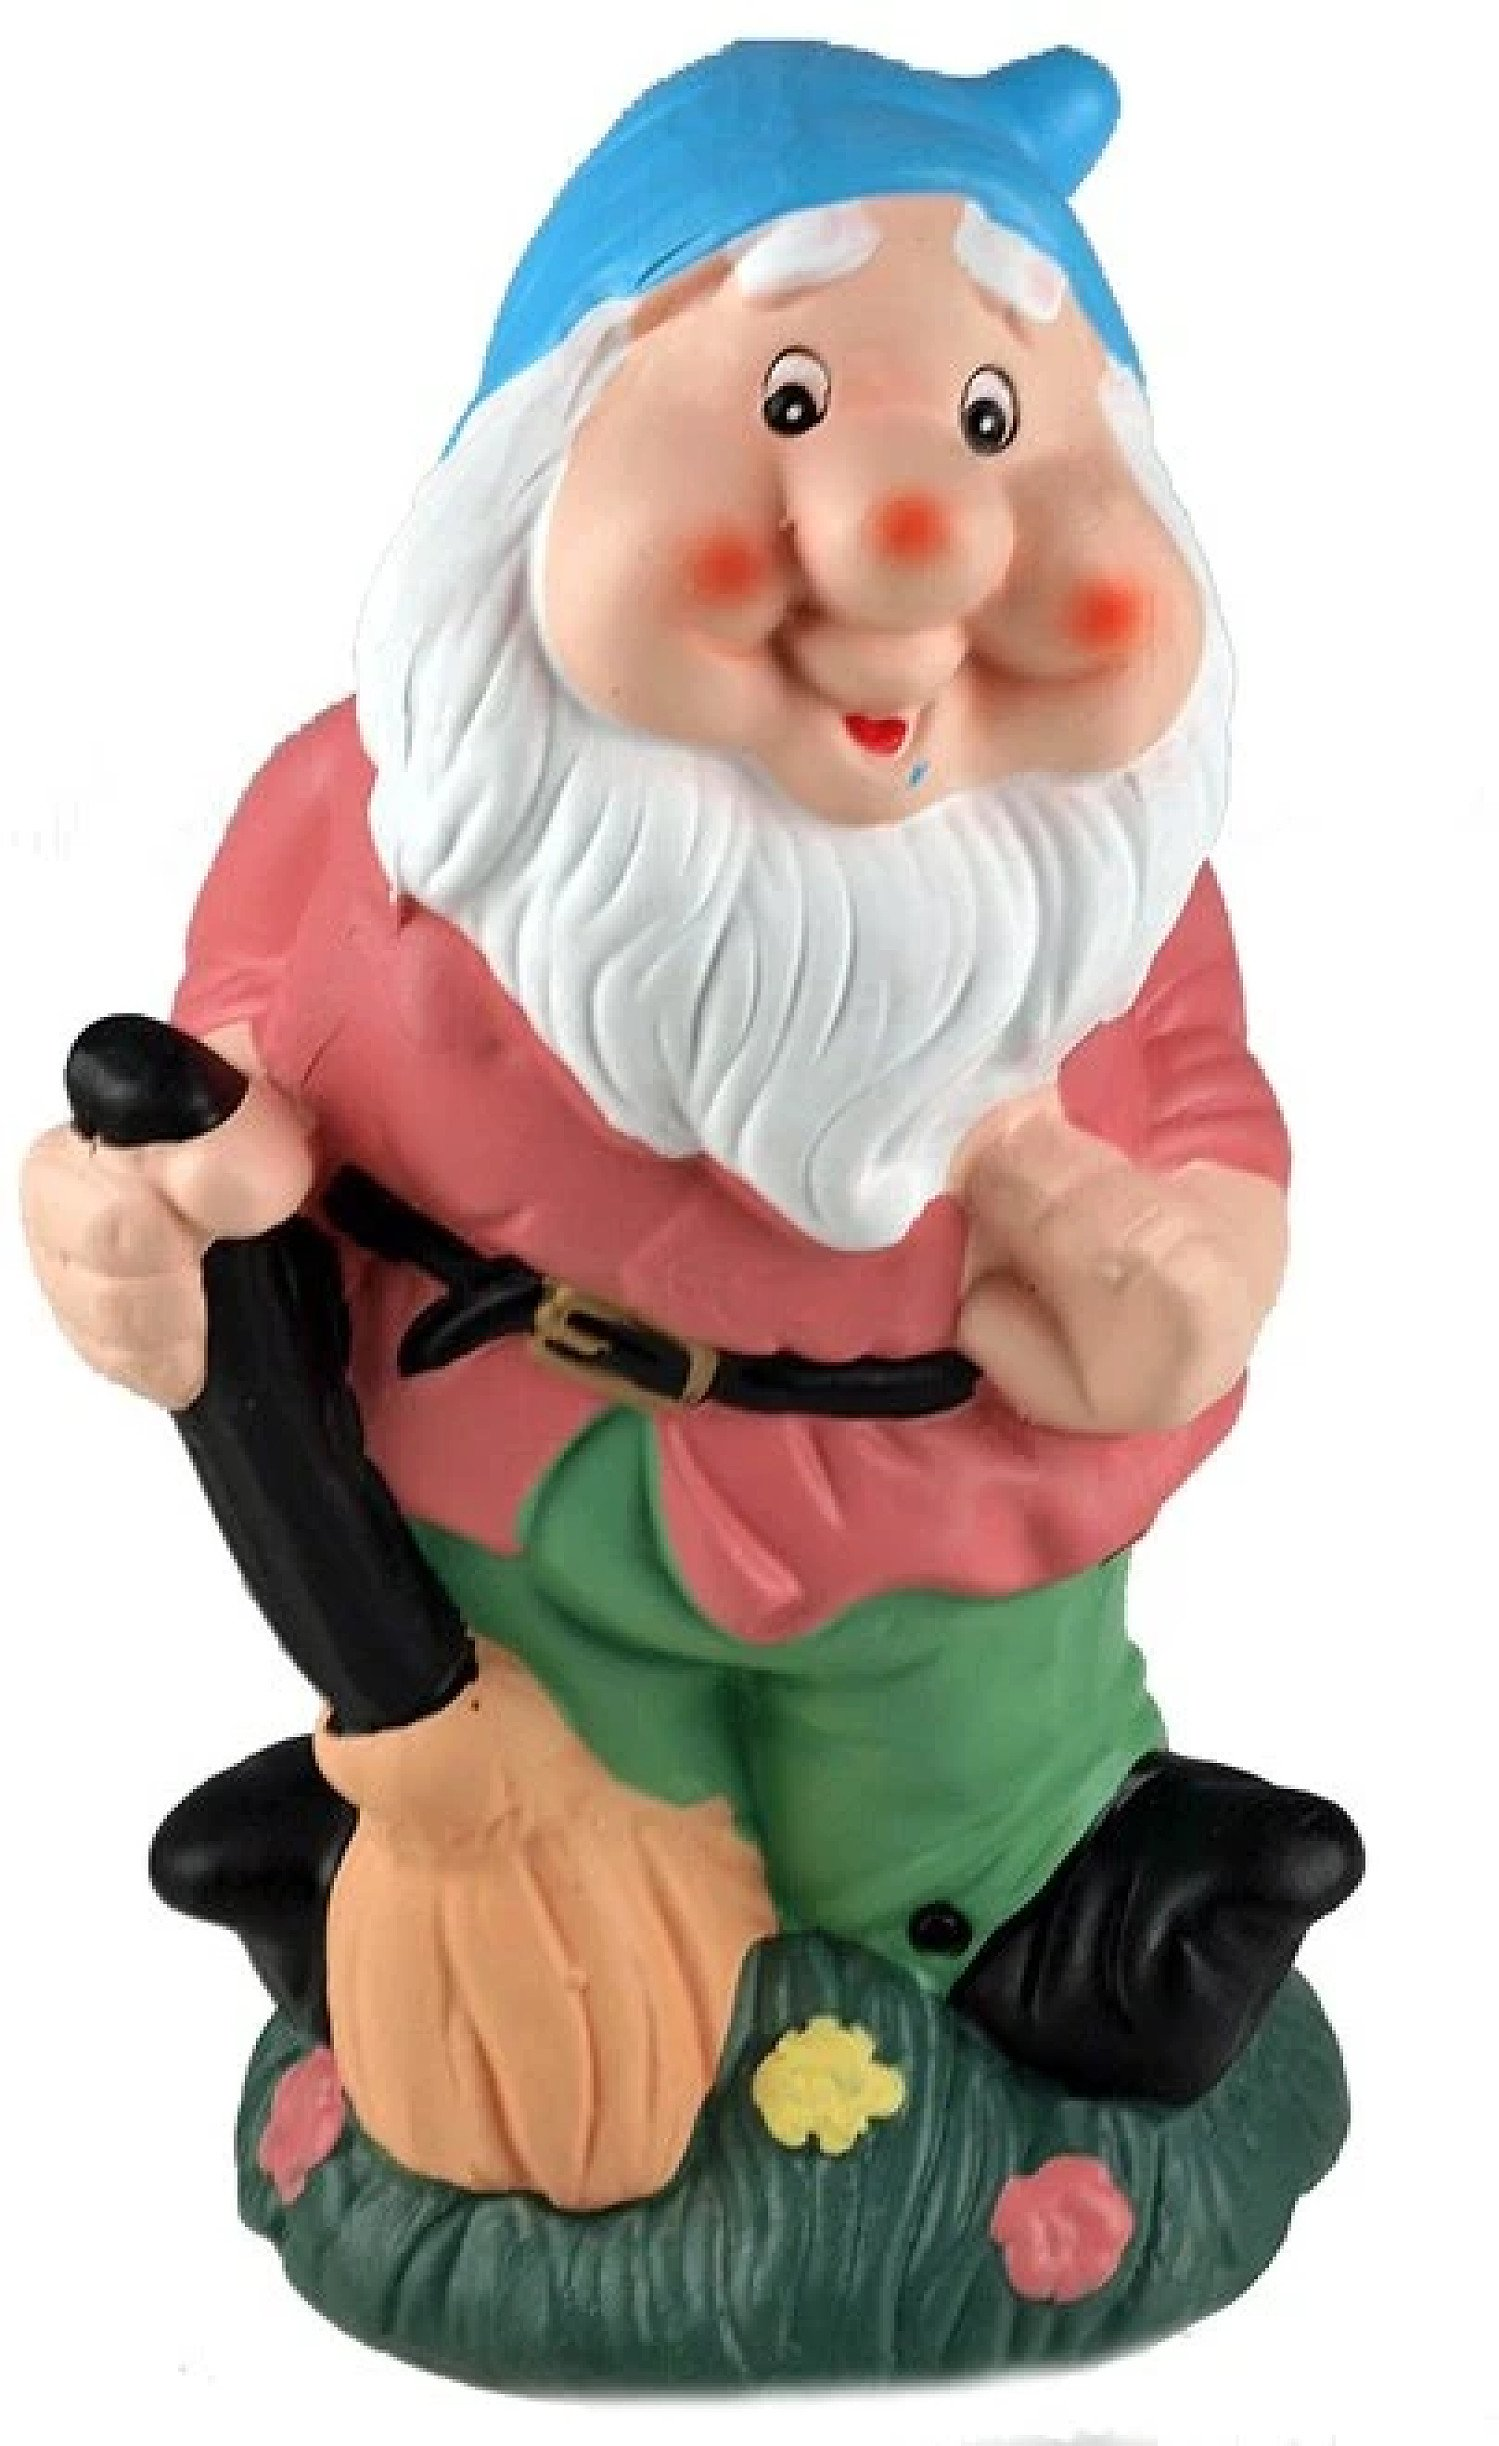 Whistling Garden Funny Gnome Ornament With Sensor Free Postage